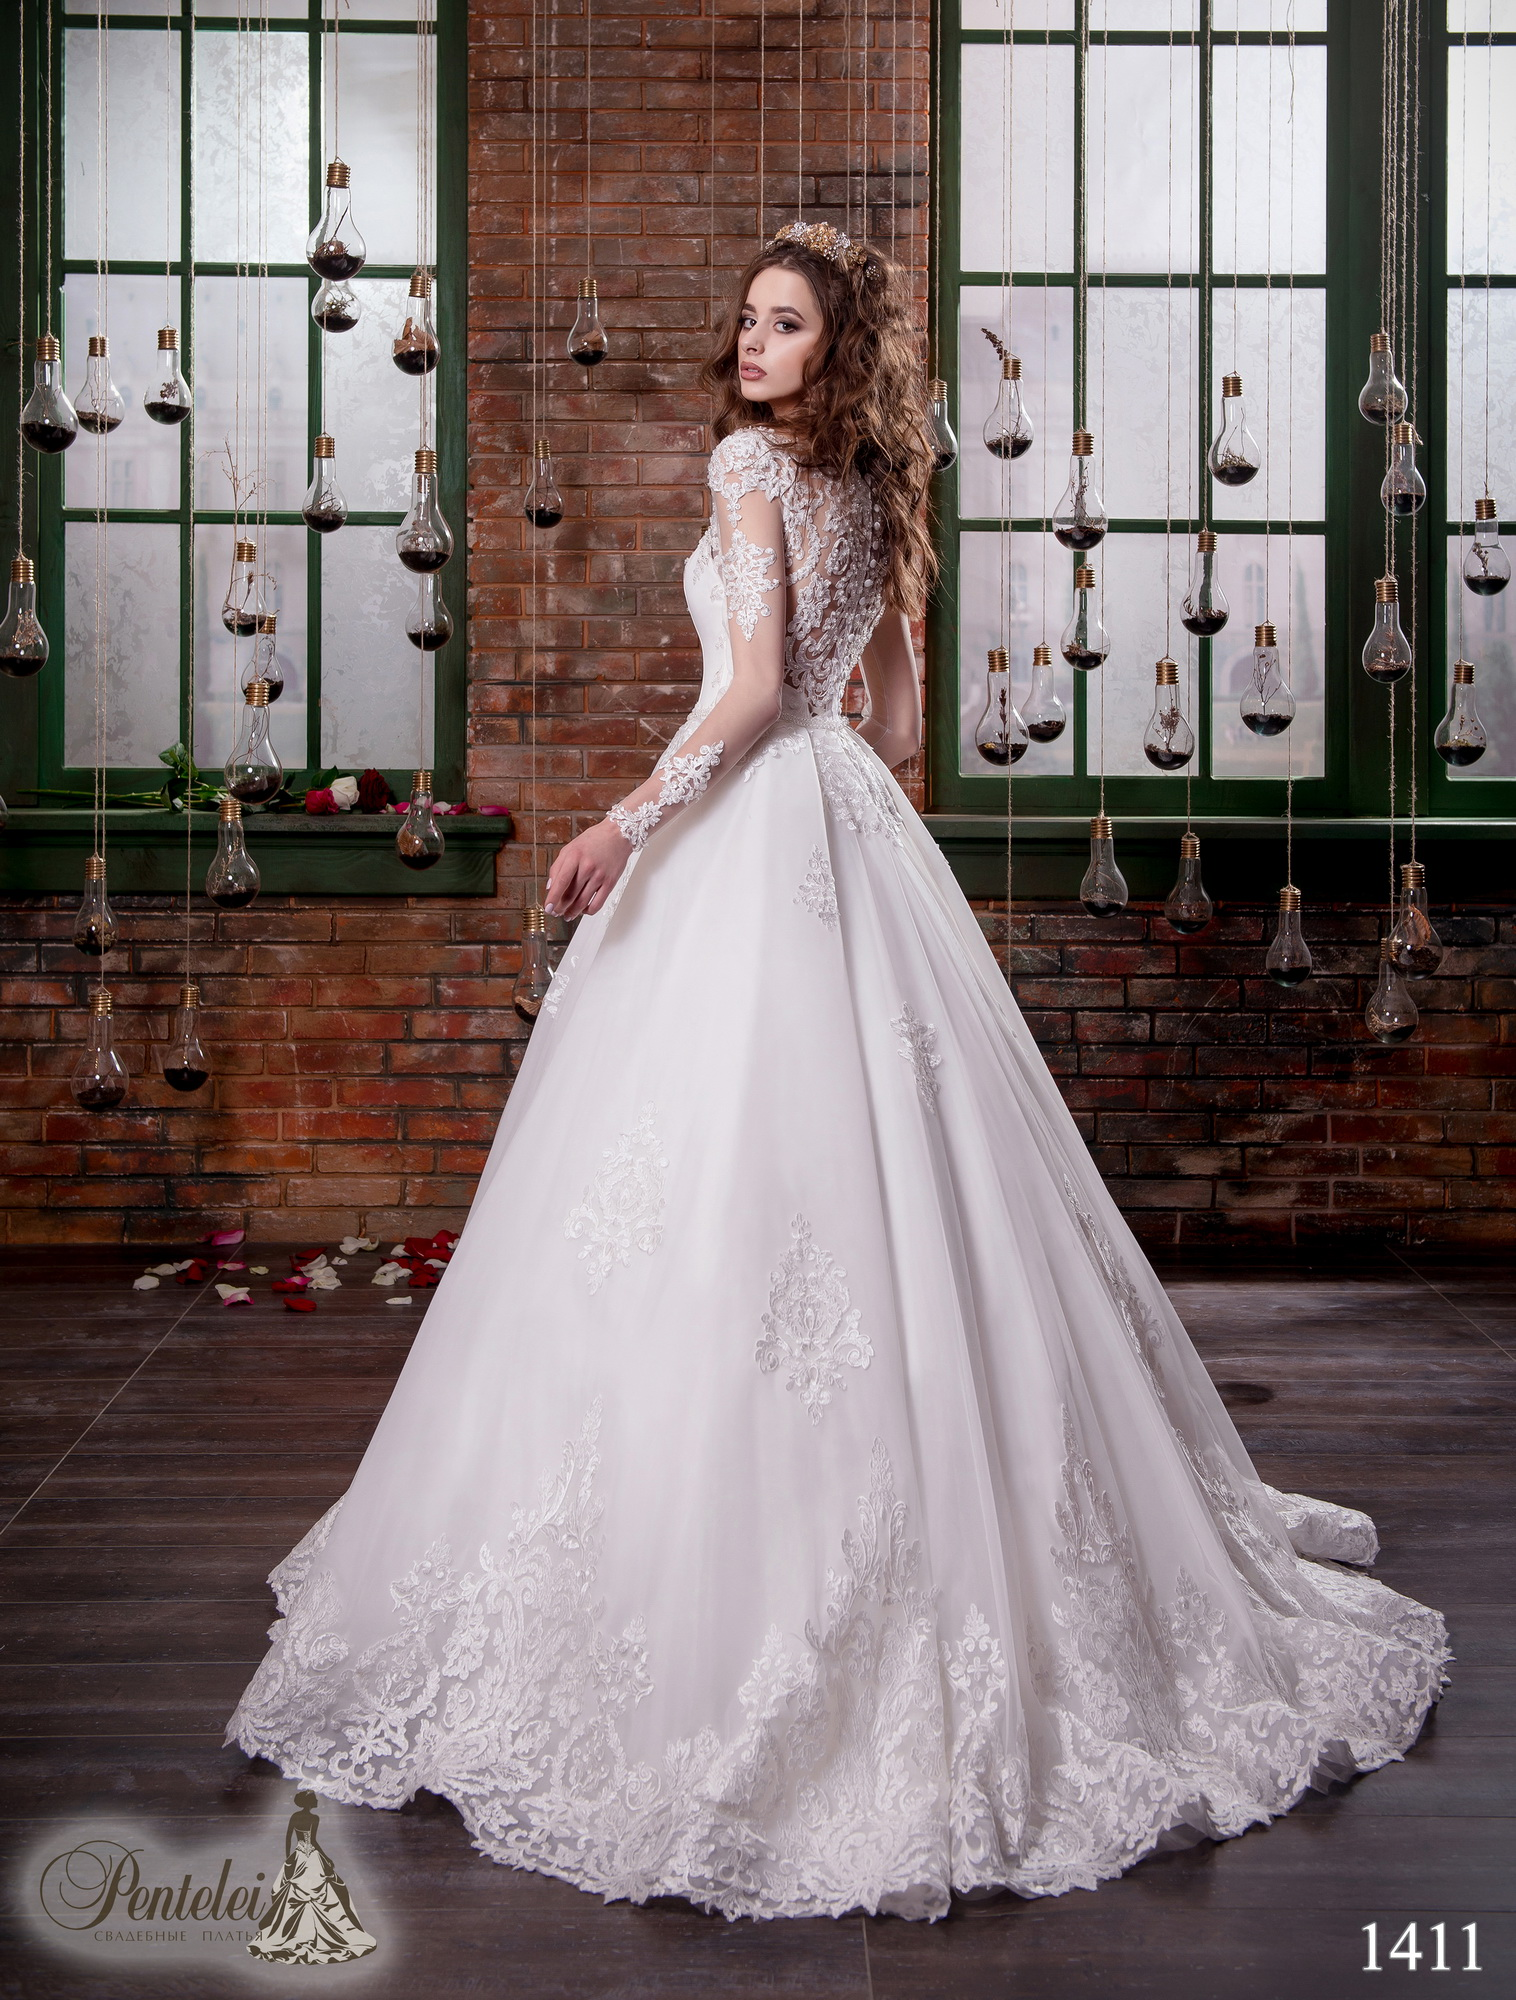 1411 | Buy wedding dresses wholesale from Pentelei